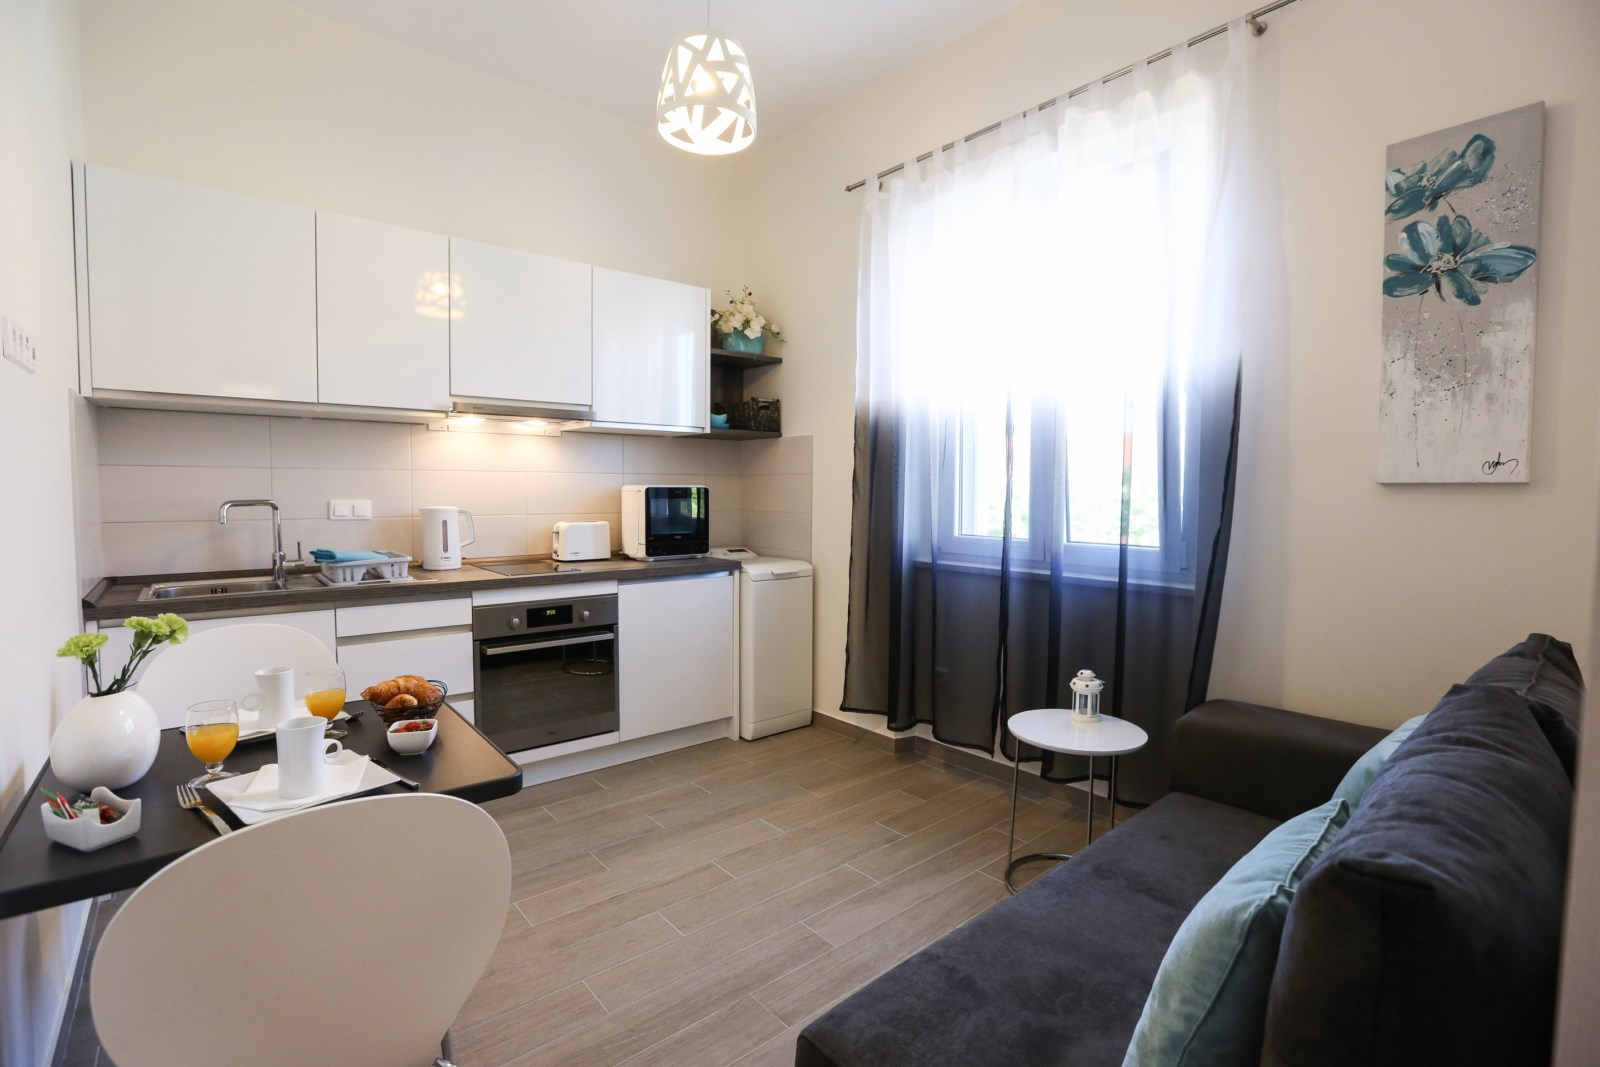 One-bedroom apartment in Dubrovnik